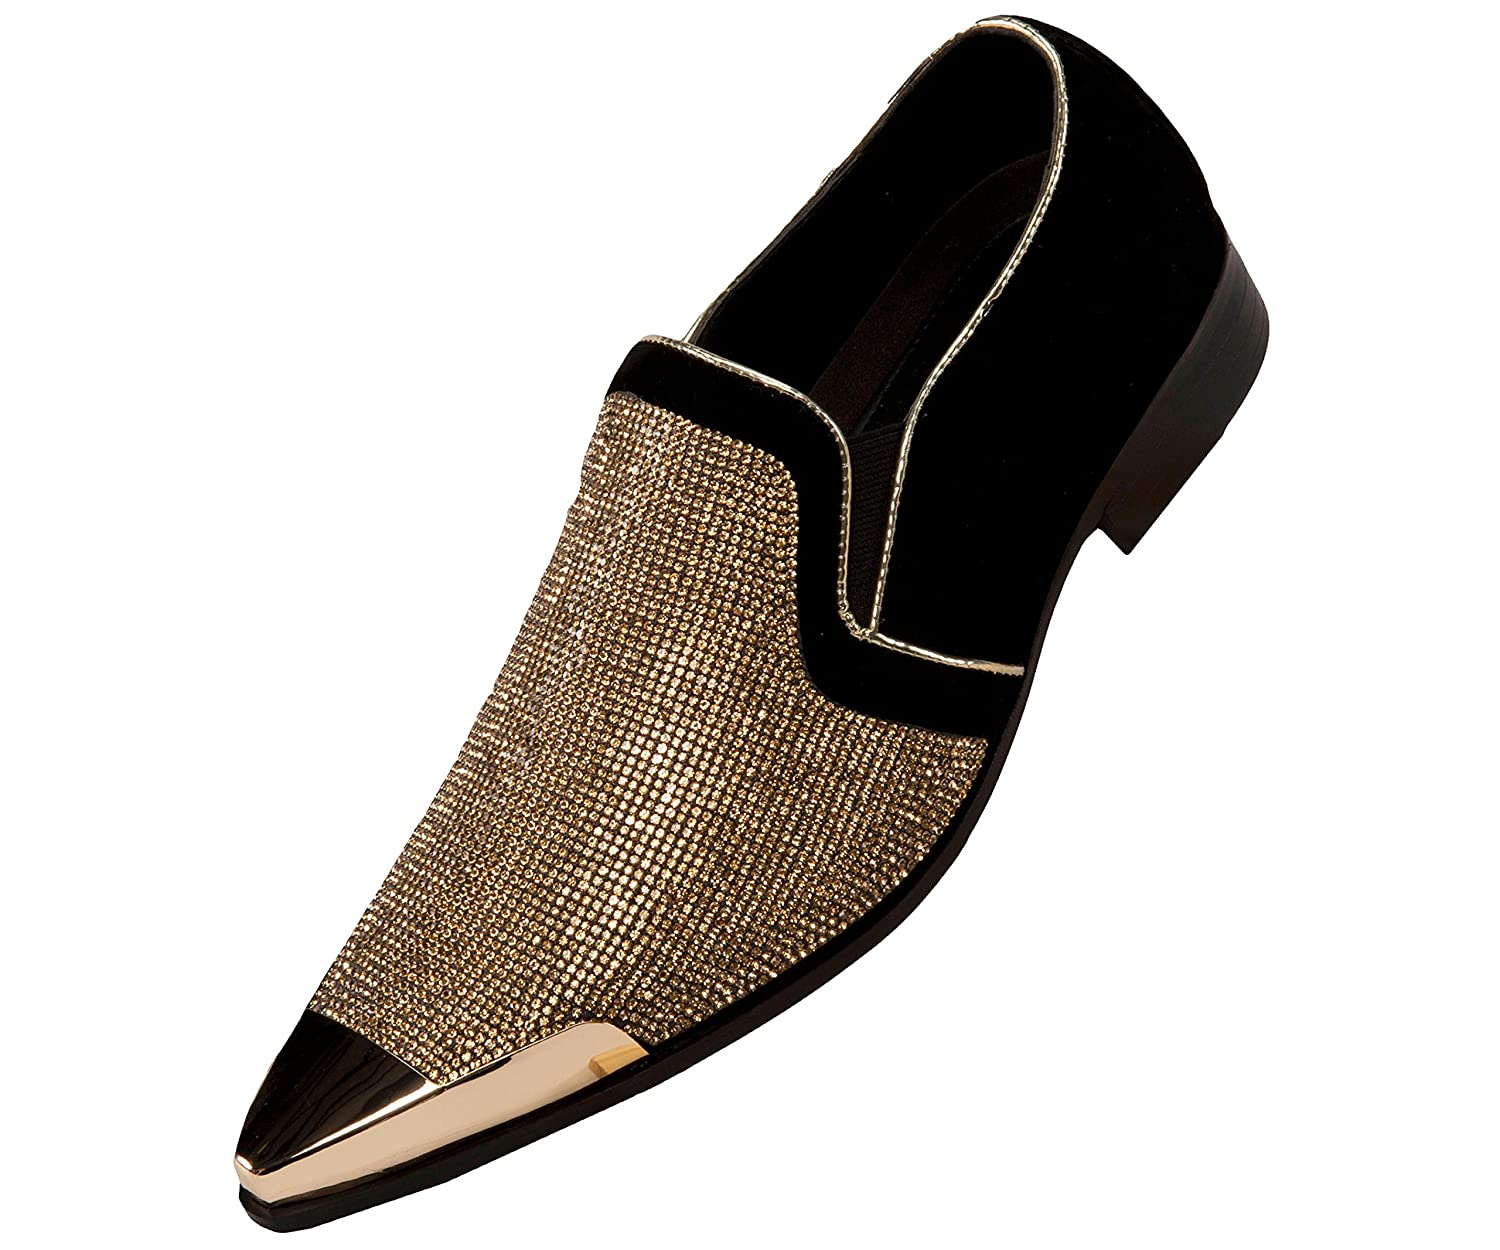 Bolano Mens Rhinestone Embellished and Faux Suede Trim with Metal Tip Dress Shoe, Comfortable Slip-On B07B1S6CZK 14 D(M) US|Black/Gold